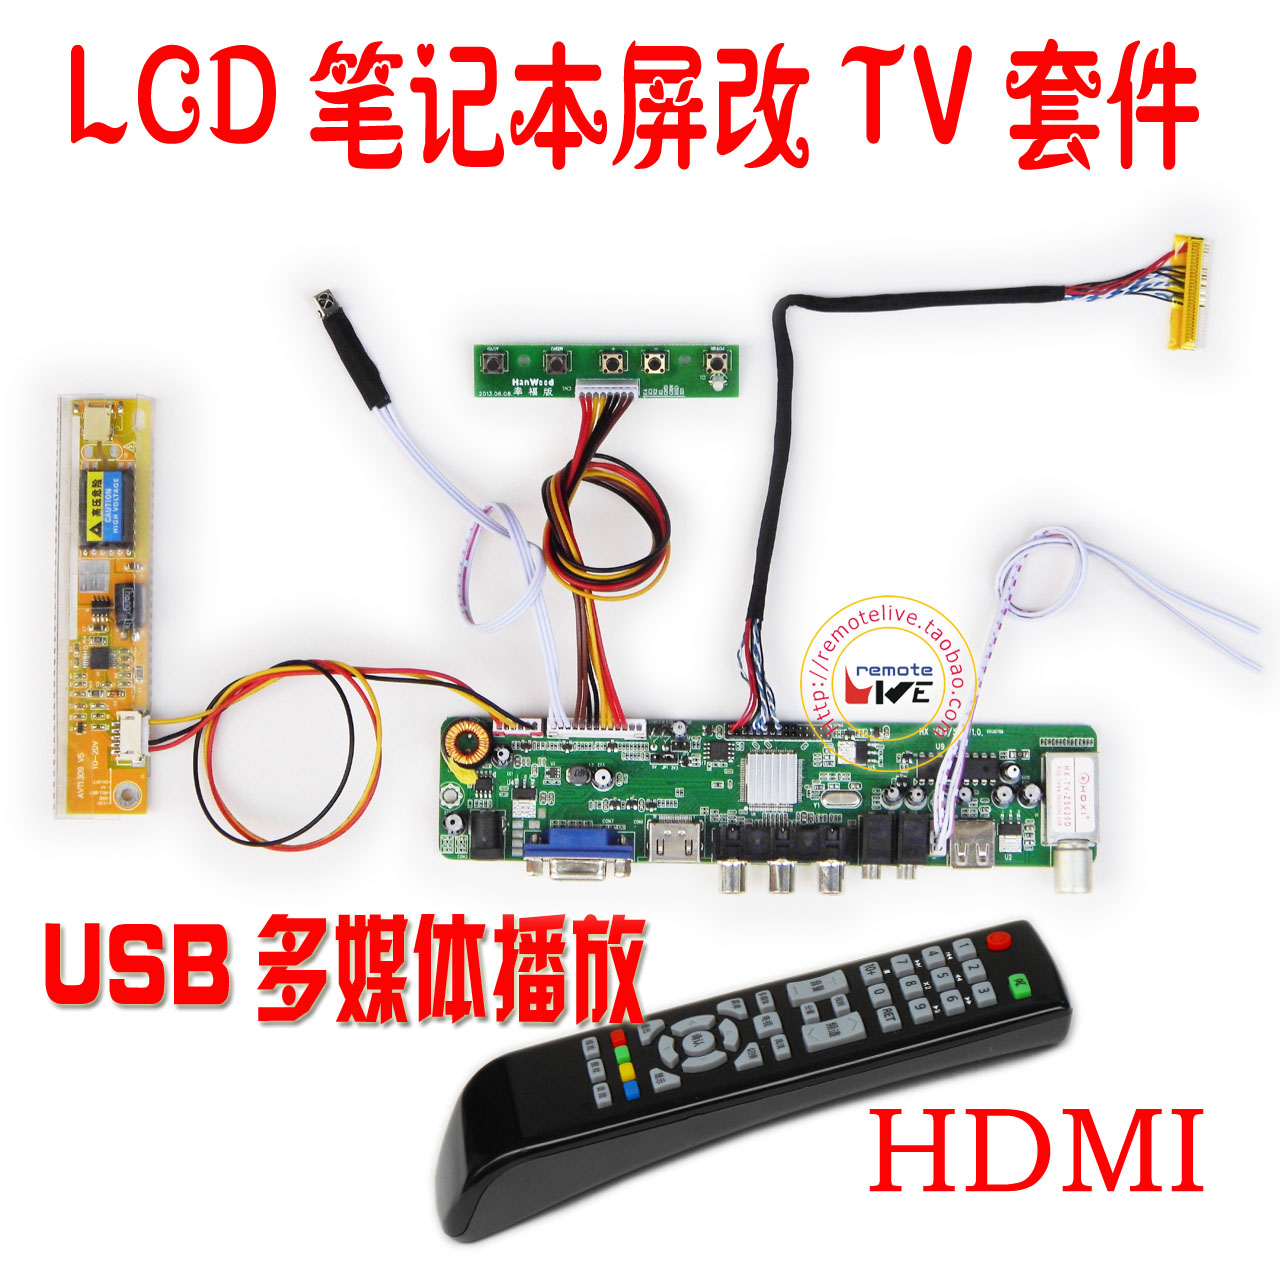 laptop lcd screen refires display diy usb tv driver board general laptop screen conversion kit. Black Bedroom Furniture Sets. Home Design Ideas